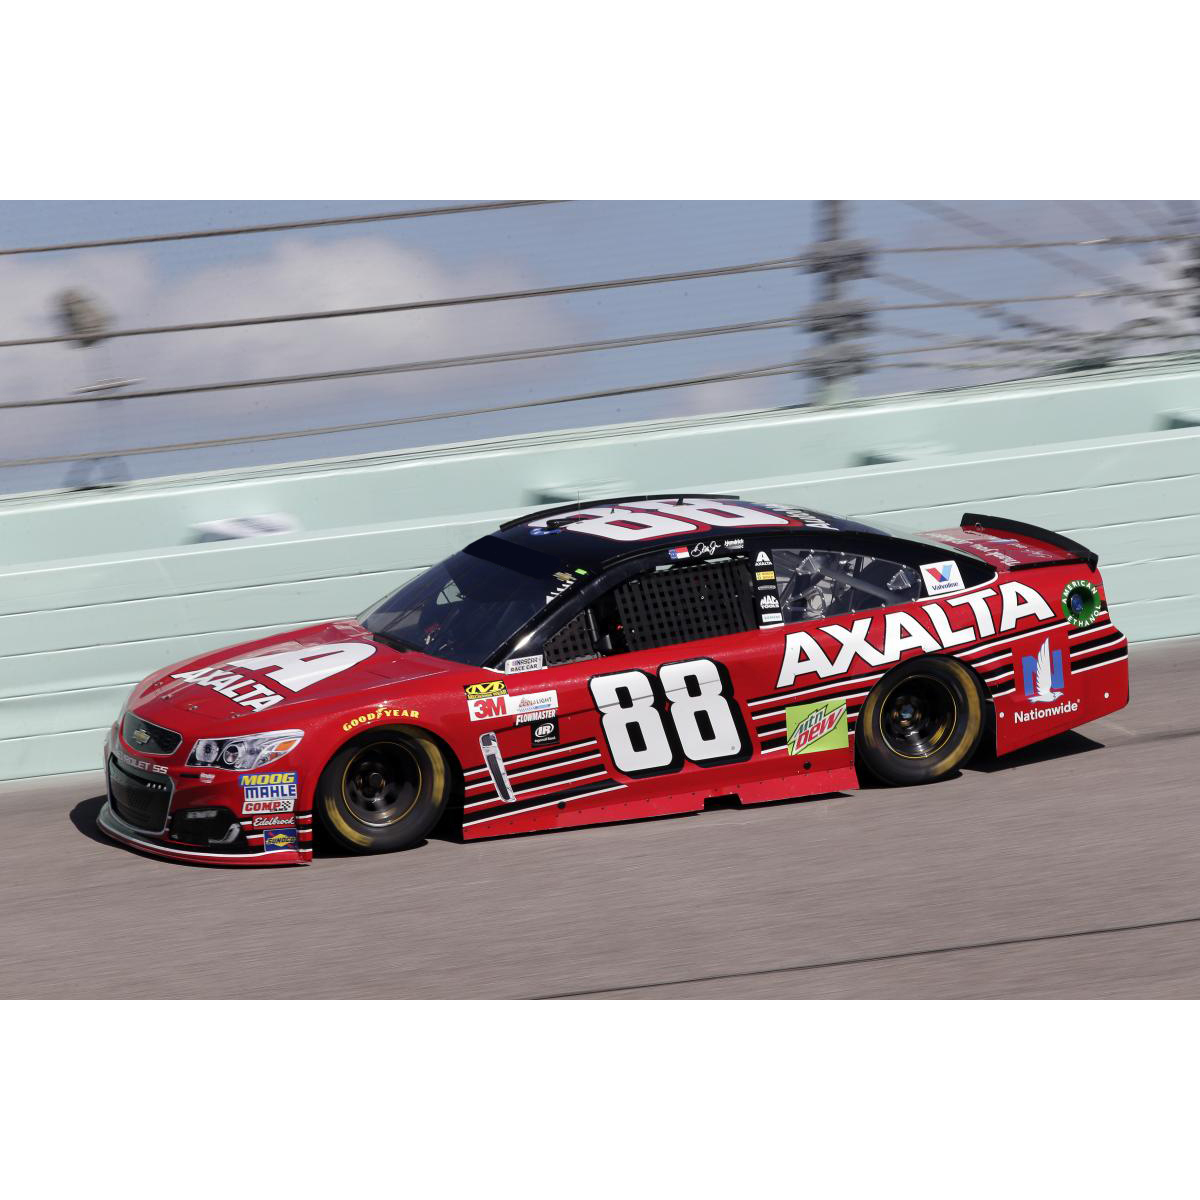 Dale Earnhardt, Jr. 2017 NASCAR Cup Series No. 88 Axalta Last Ride Homestead Raced 1:24 Die-Cast